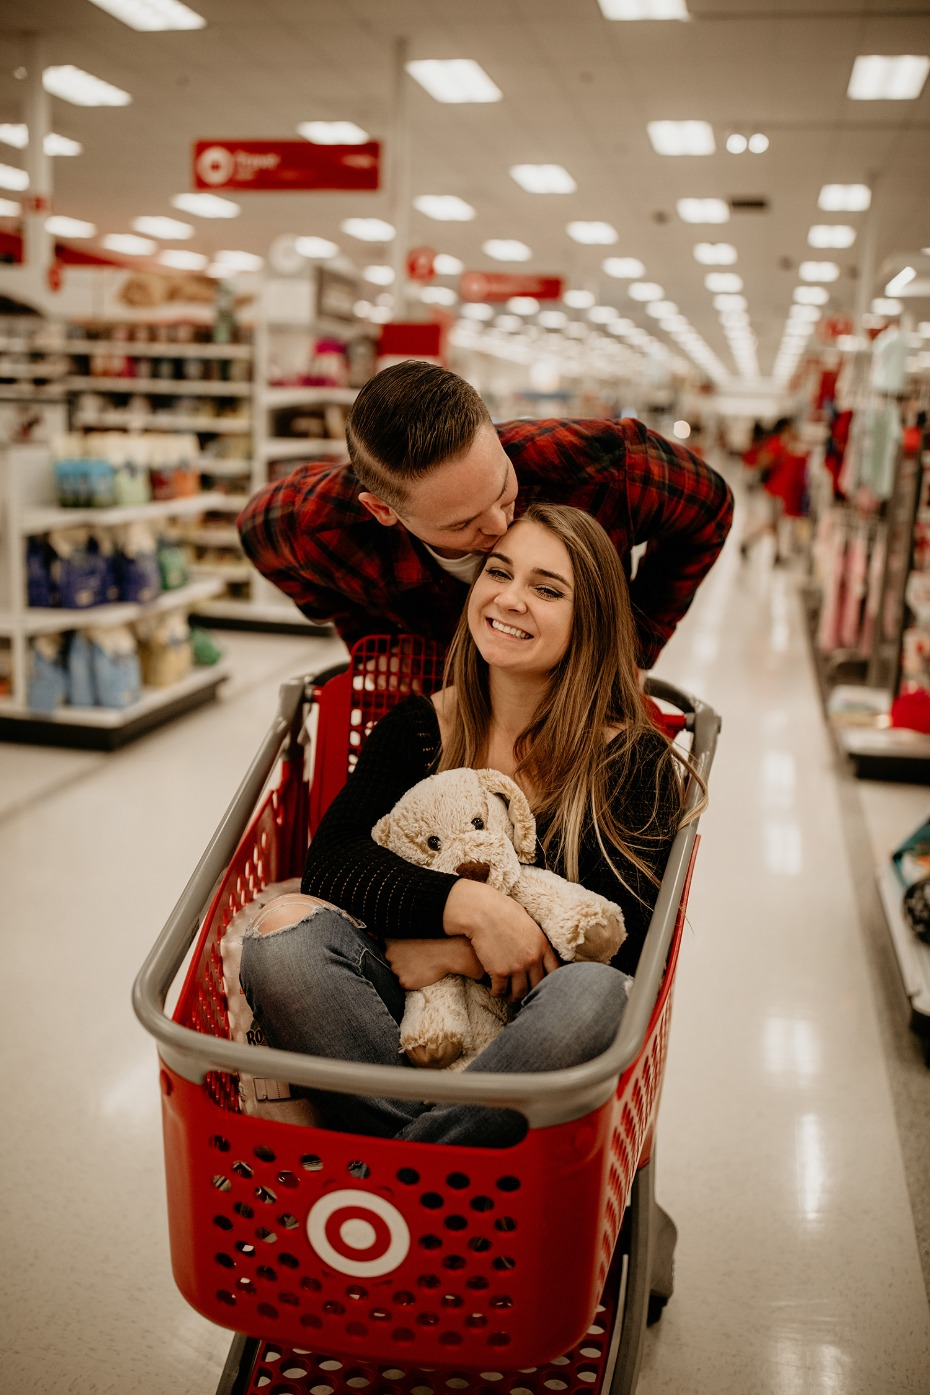 An unconventional engagement shoot in Target